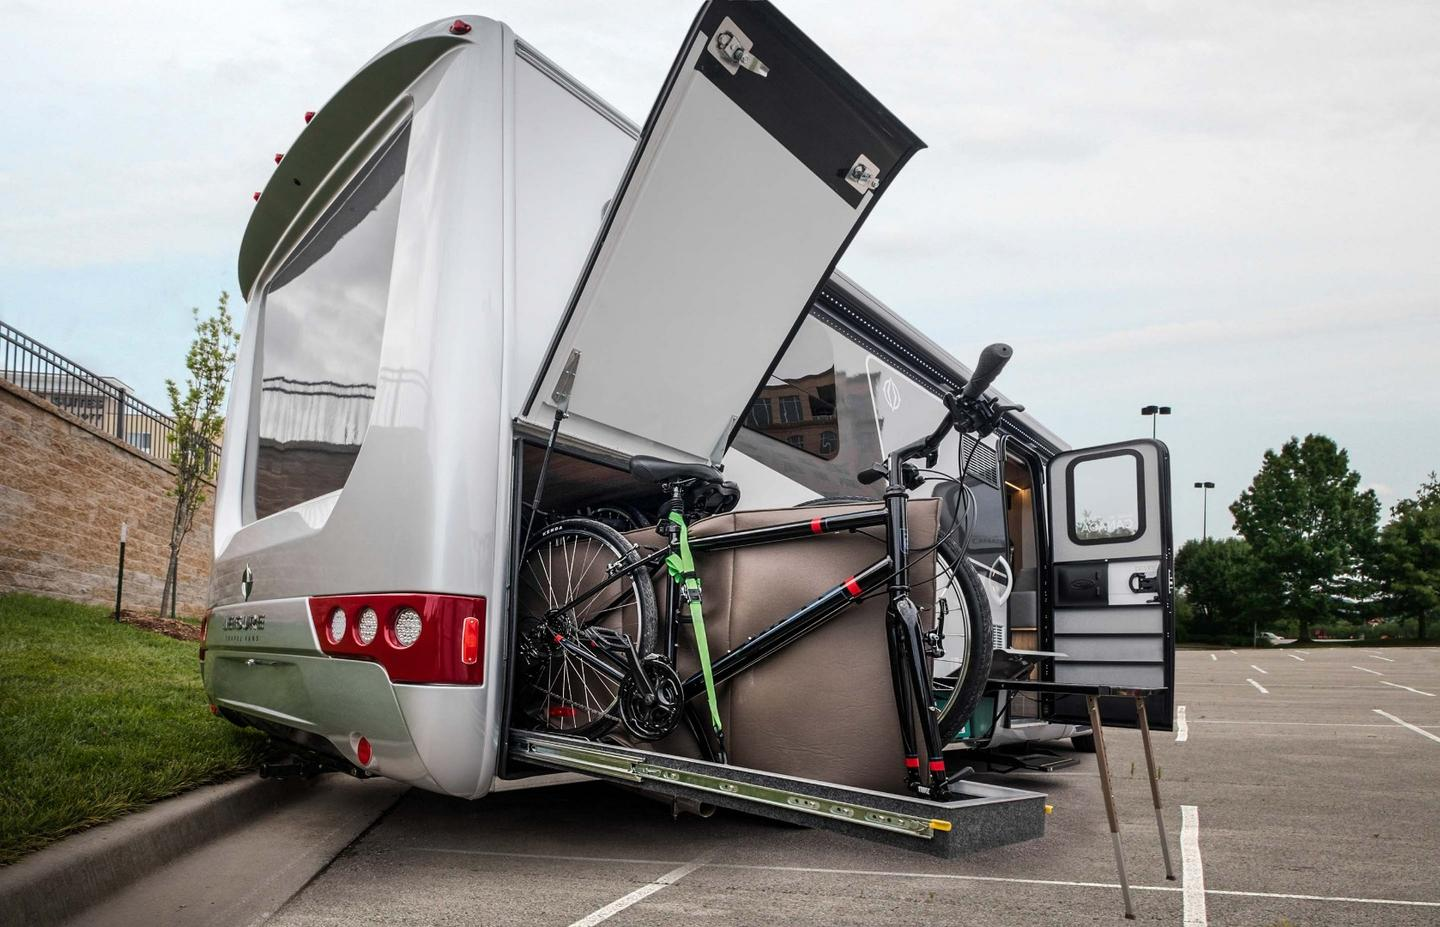 Leisure Travel Vans responds to the demand for a bicycle garage